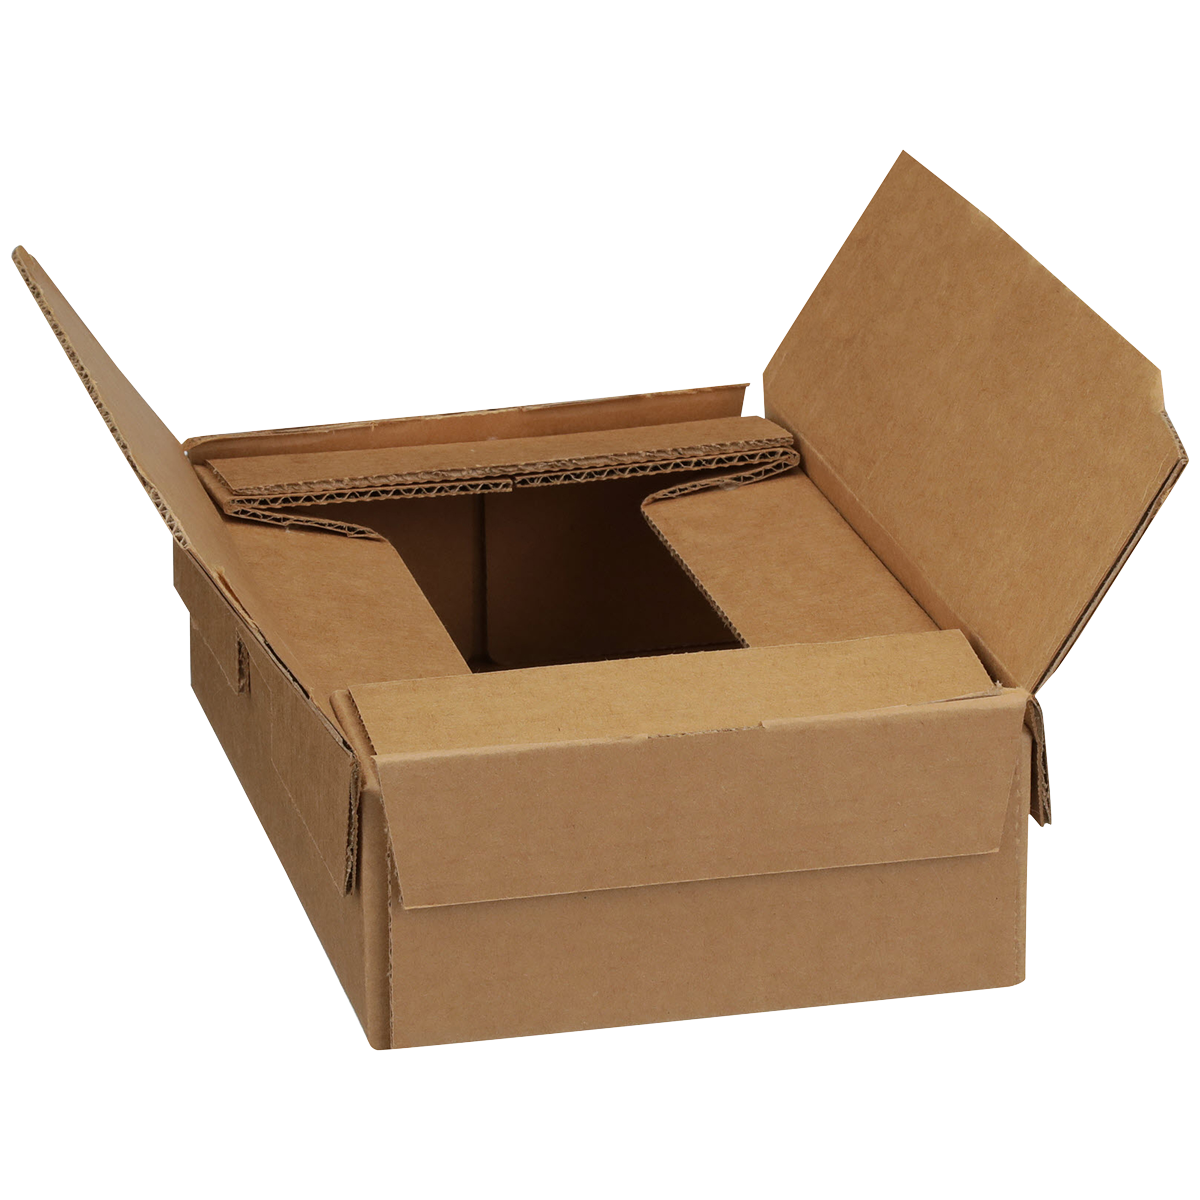 ipack corrugated box